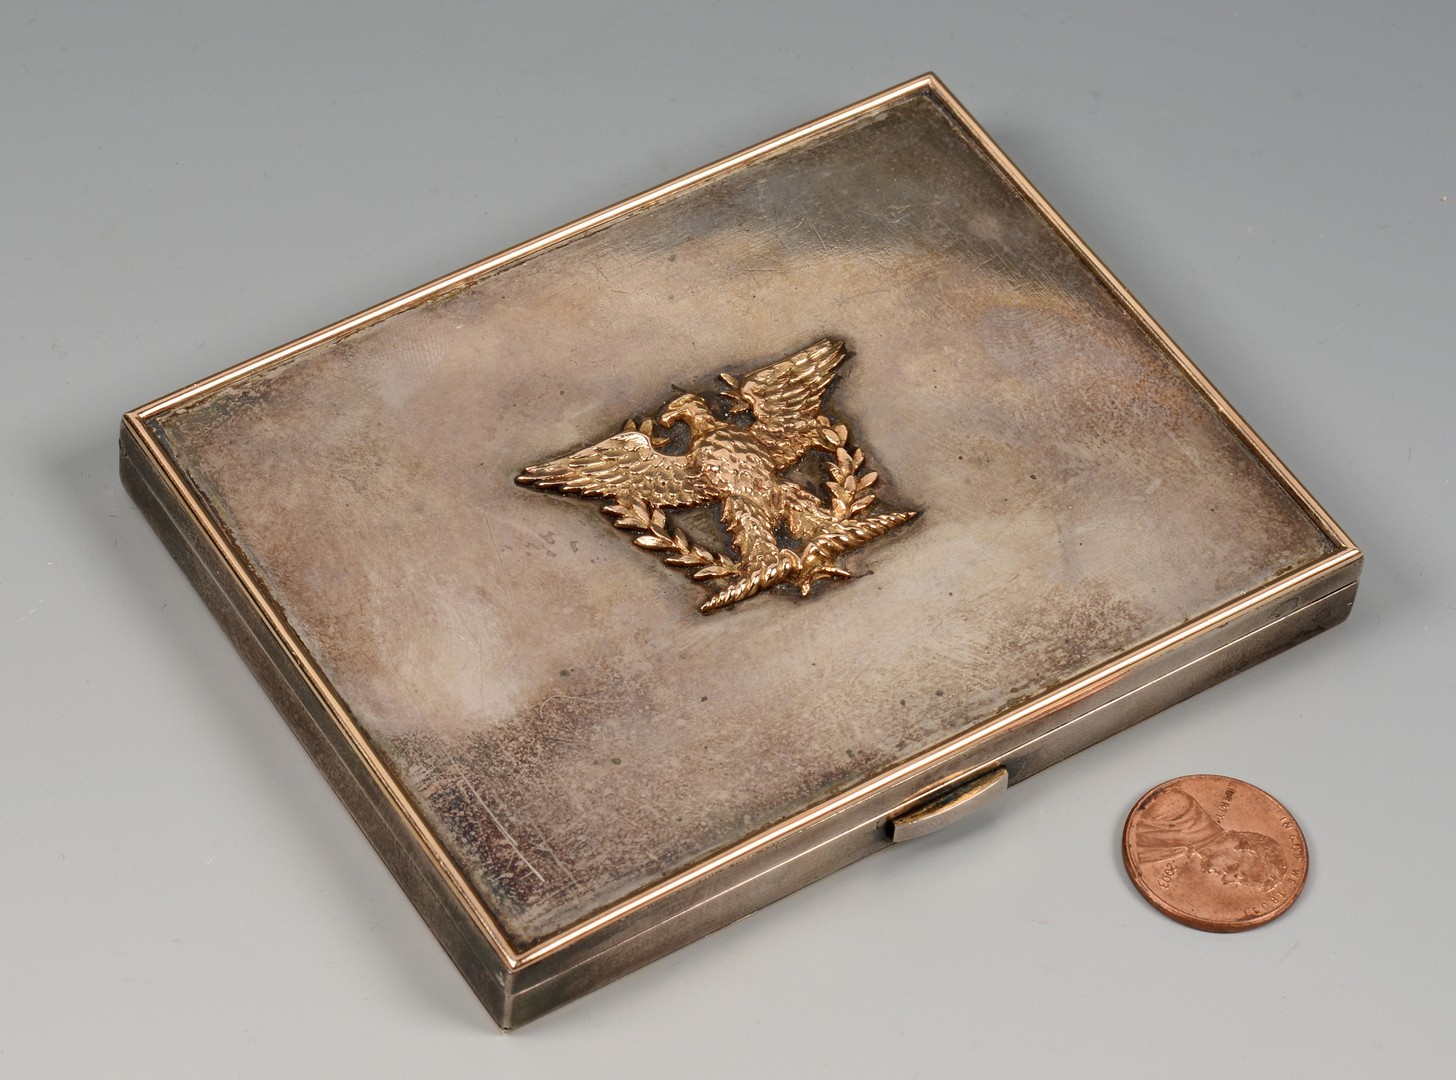 Lot 564: Silver Cigarette Box